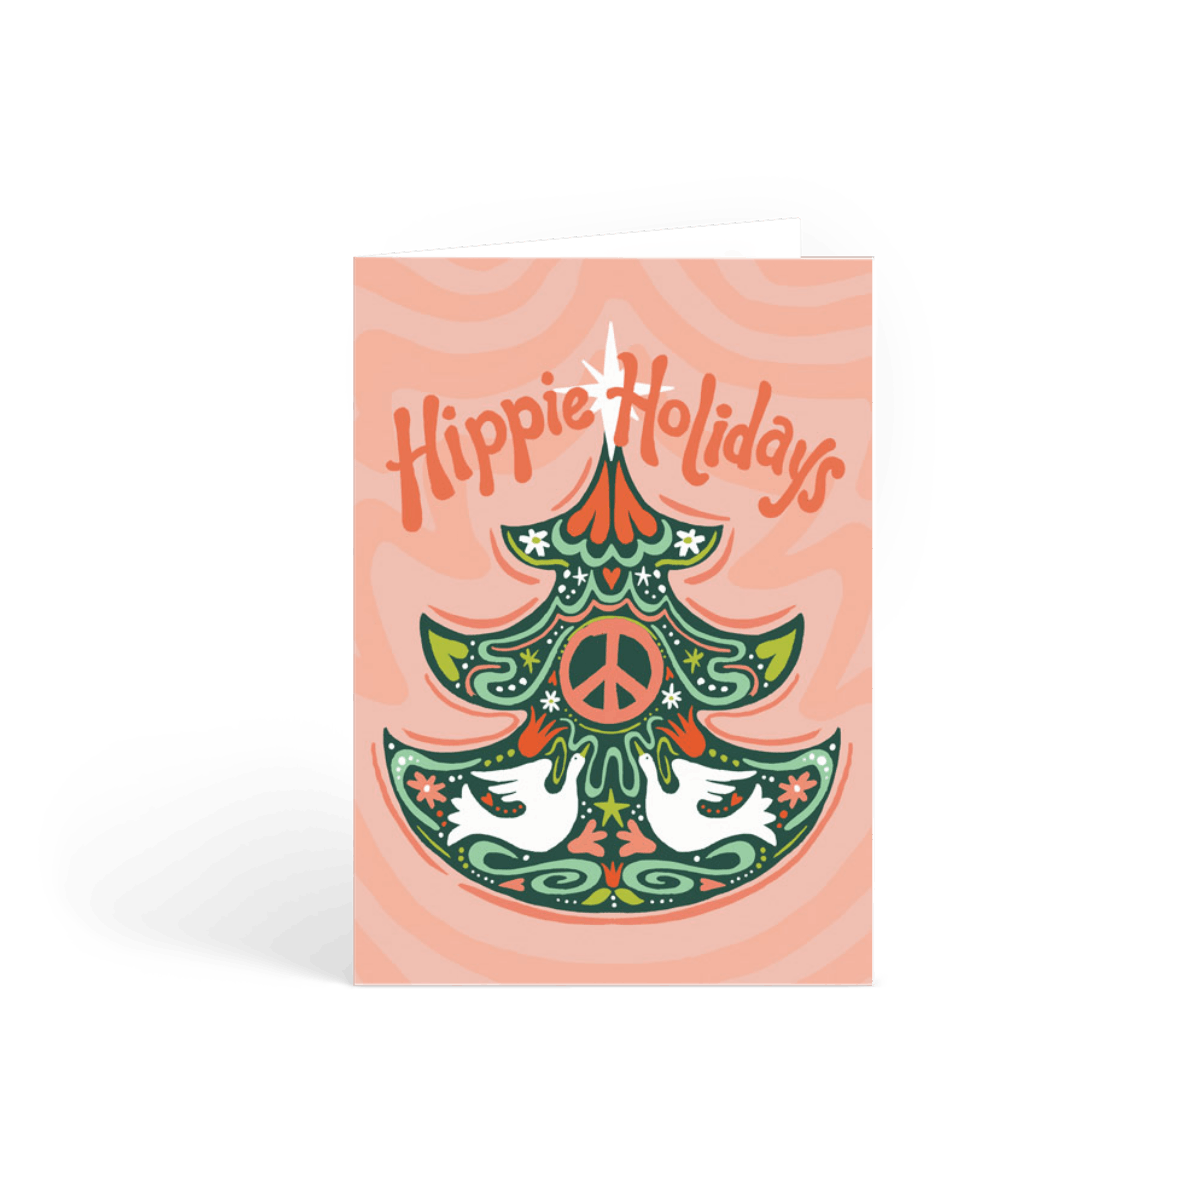 Https%3a%2f%2fwww.papier.com%2fproduct image%2f94382%2f2%2fhippie holidays 23618 front 1571944859.png?ixlib=rb 1.1